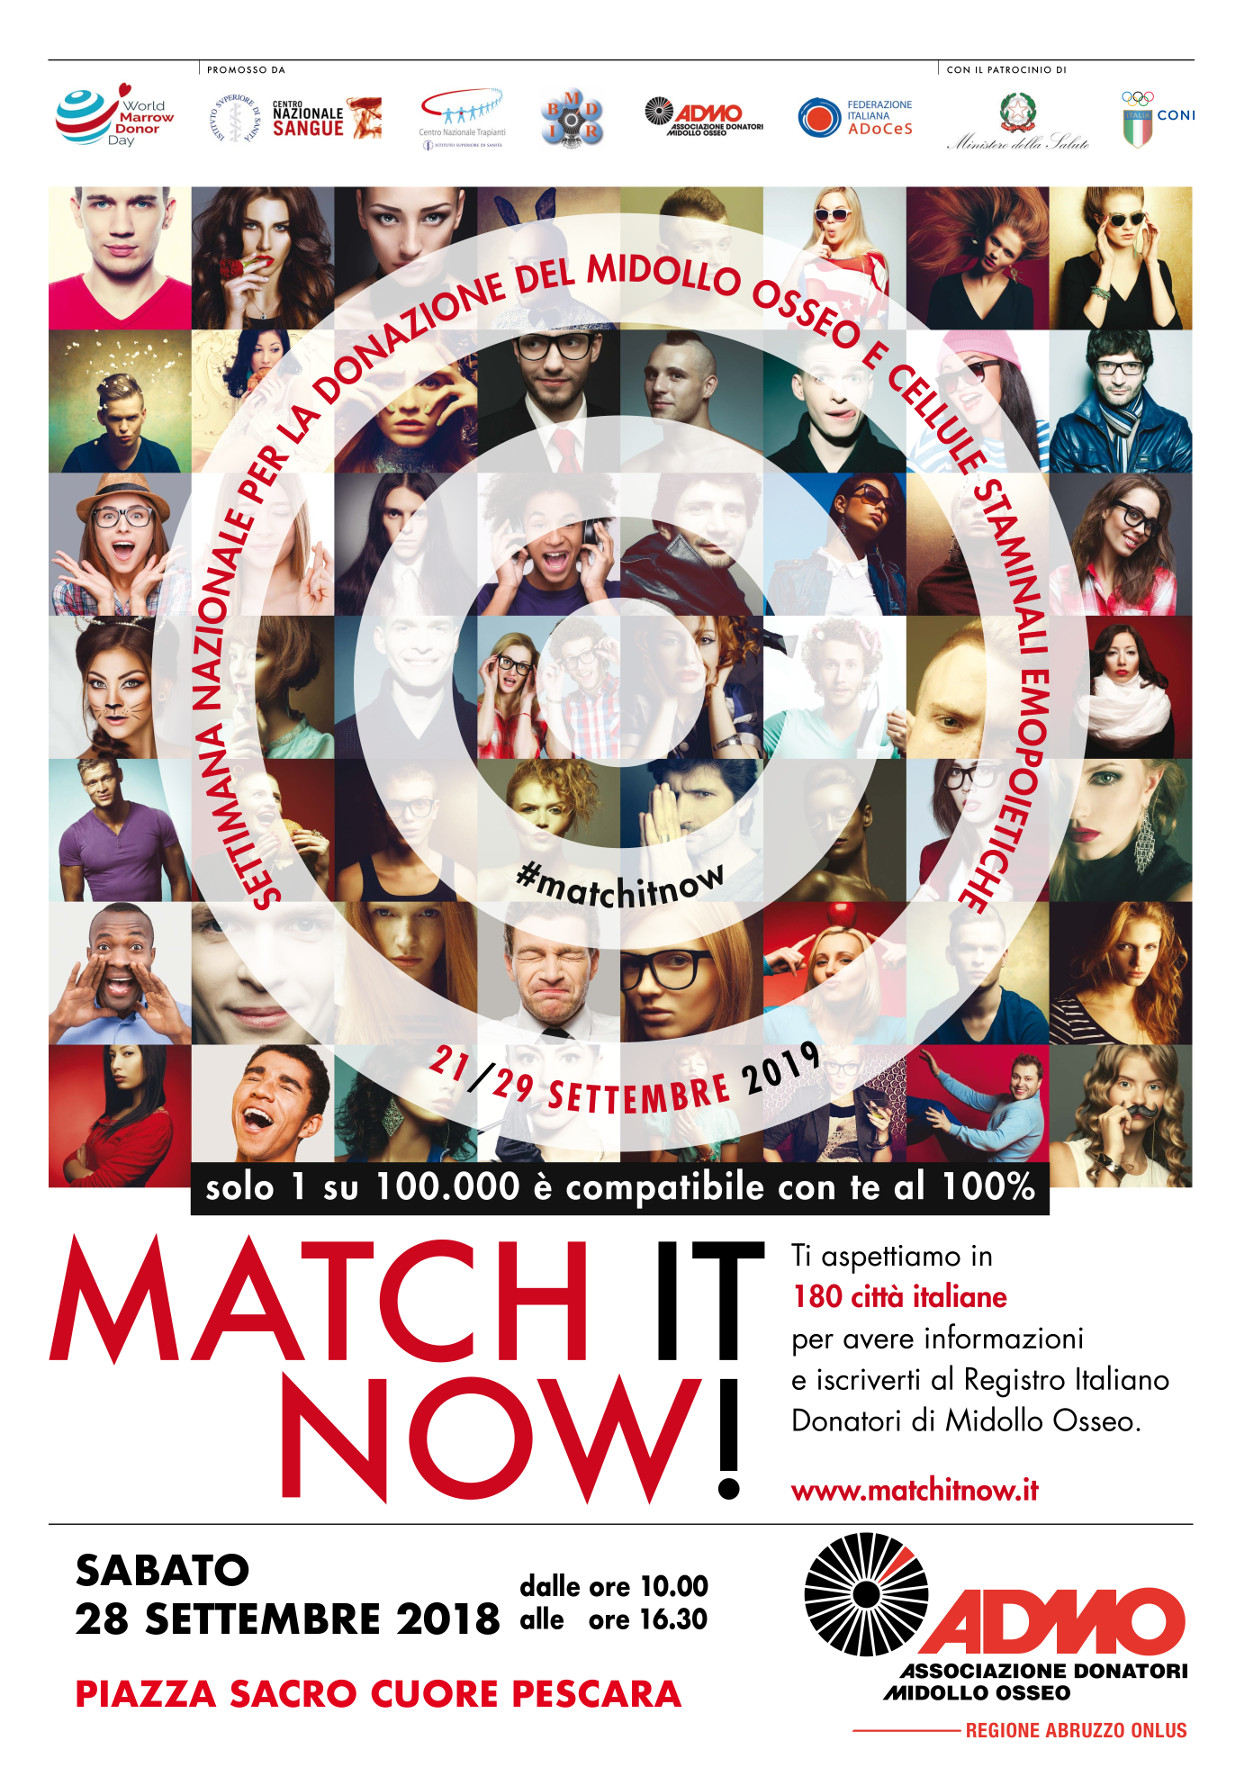 Match It Now - ADMO Regione Abruzzo Onlus